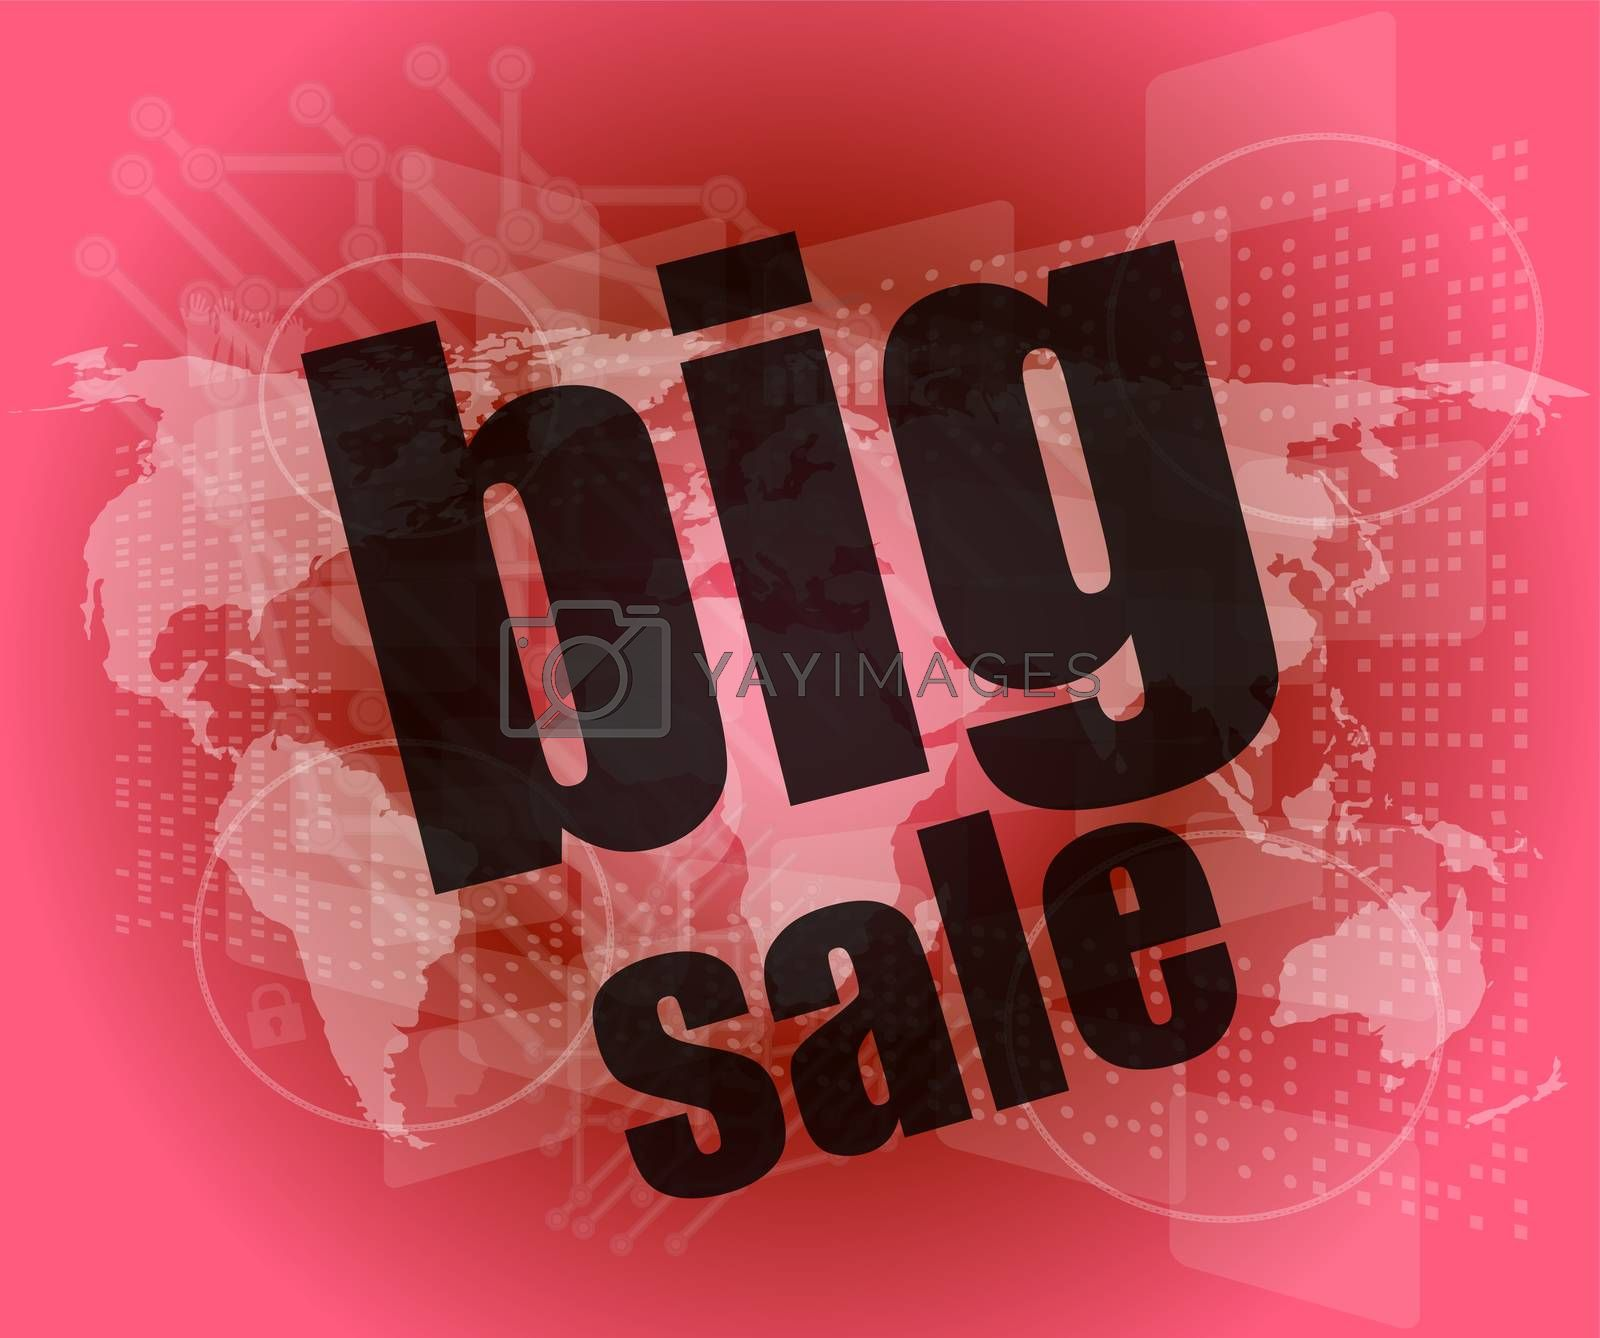 big sale words on business digital touch screen